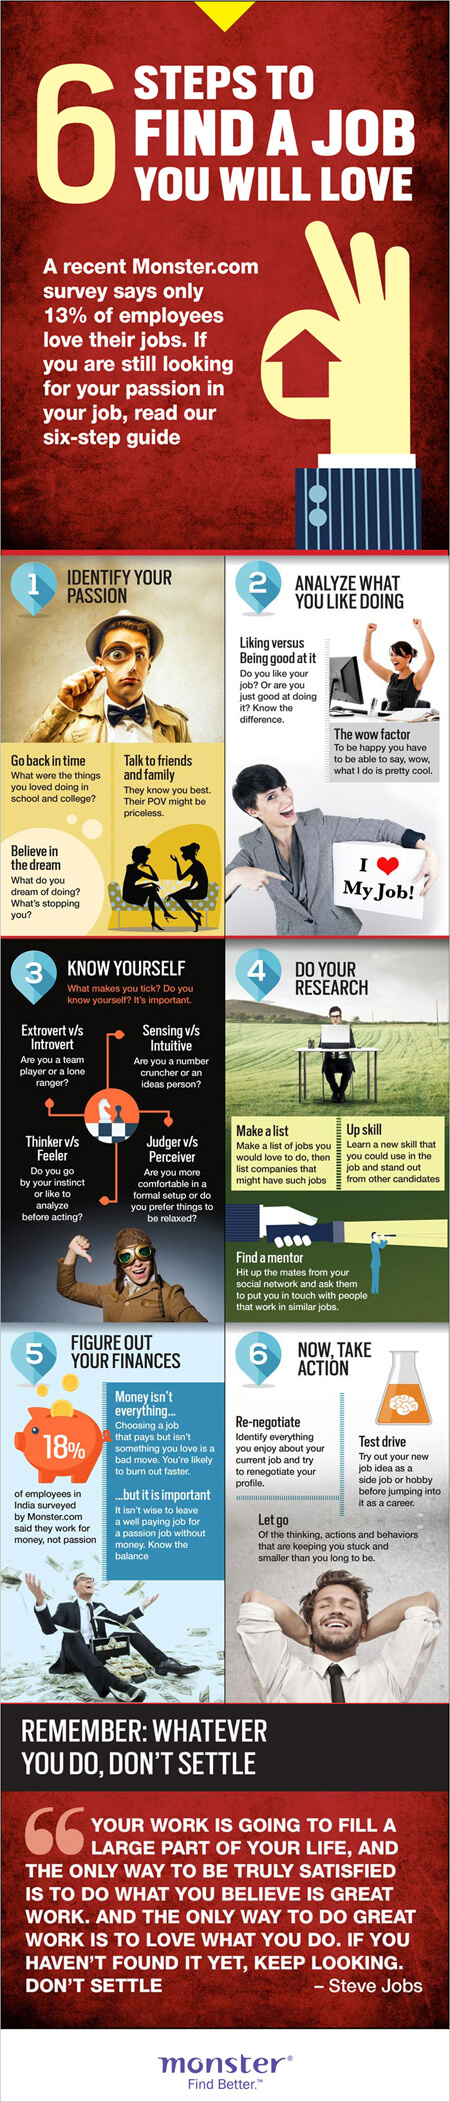 6 Steps to find a job you will love #infographic